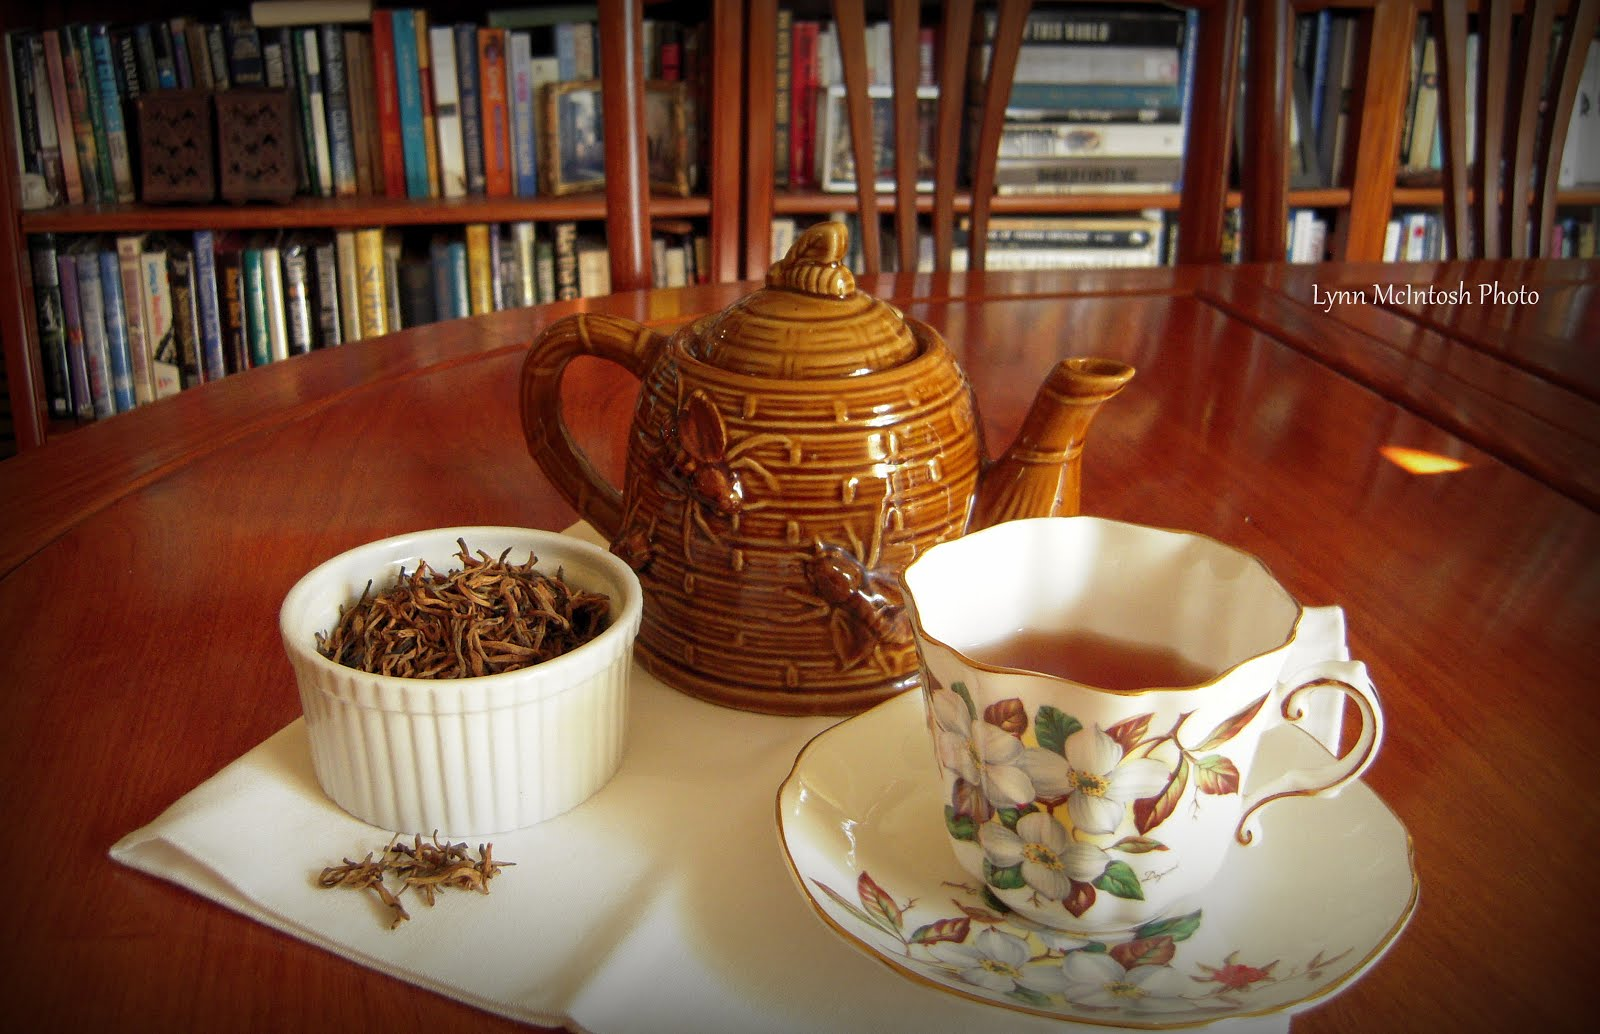 I Love Books and Tea!